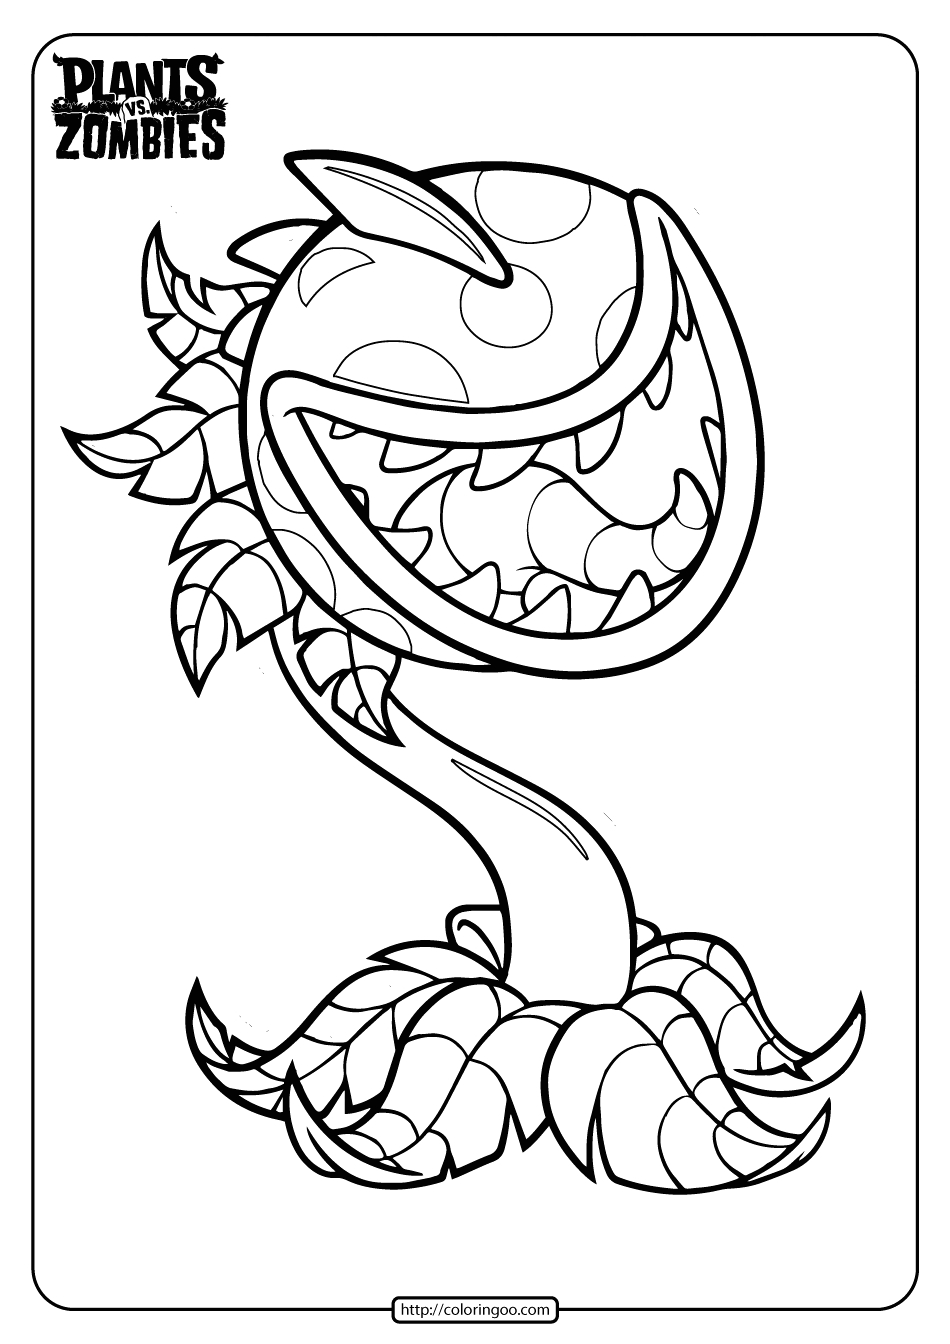 Plants Vs Zombies Battle for Neighborville Coloring Pages Free Printable Plants Vs Zombies Chomper Coloring